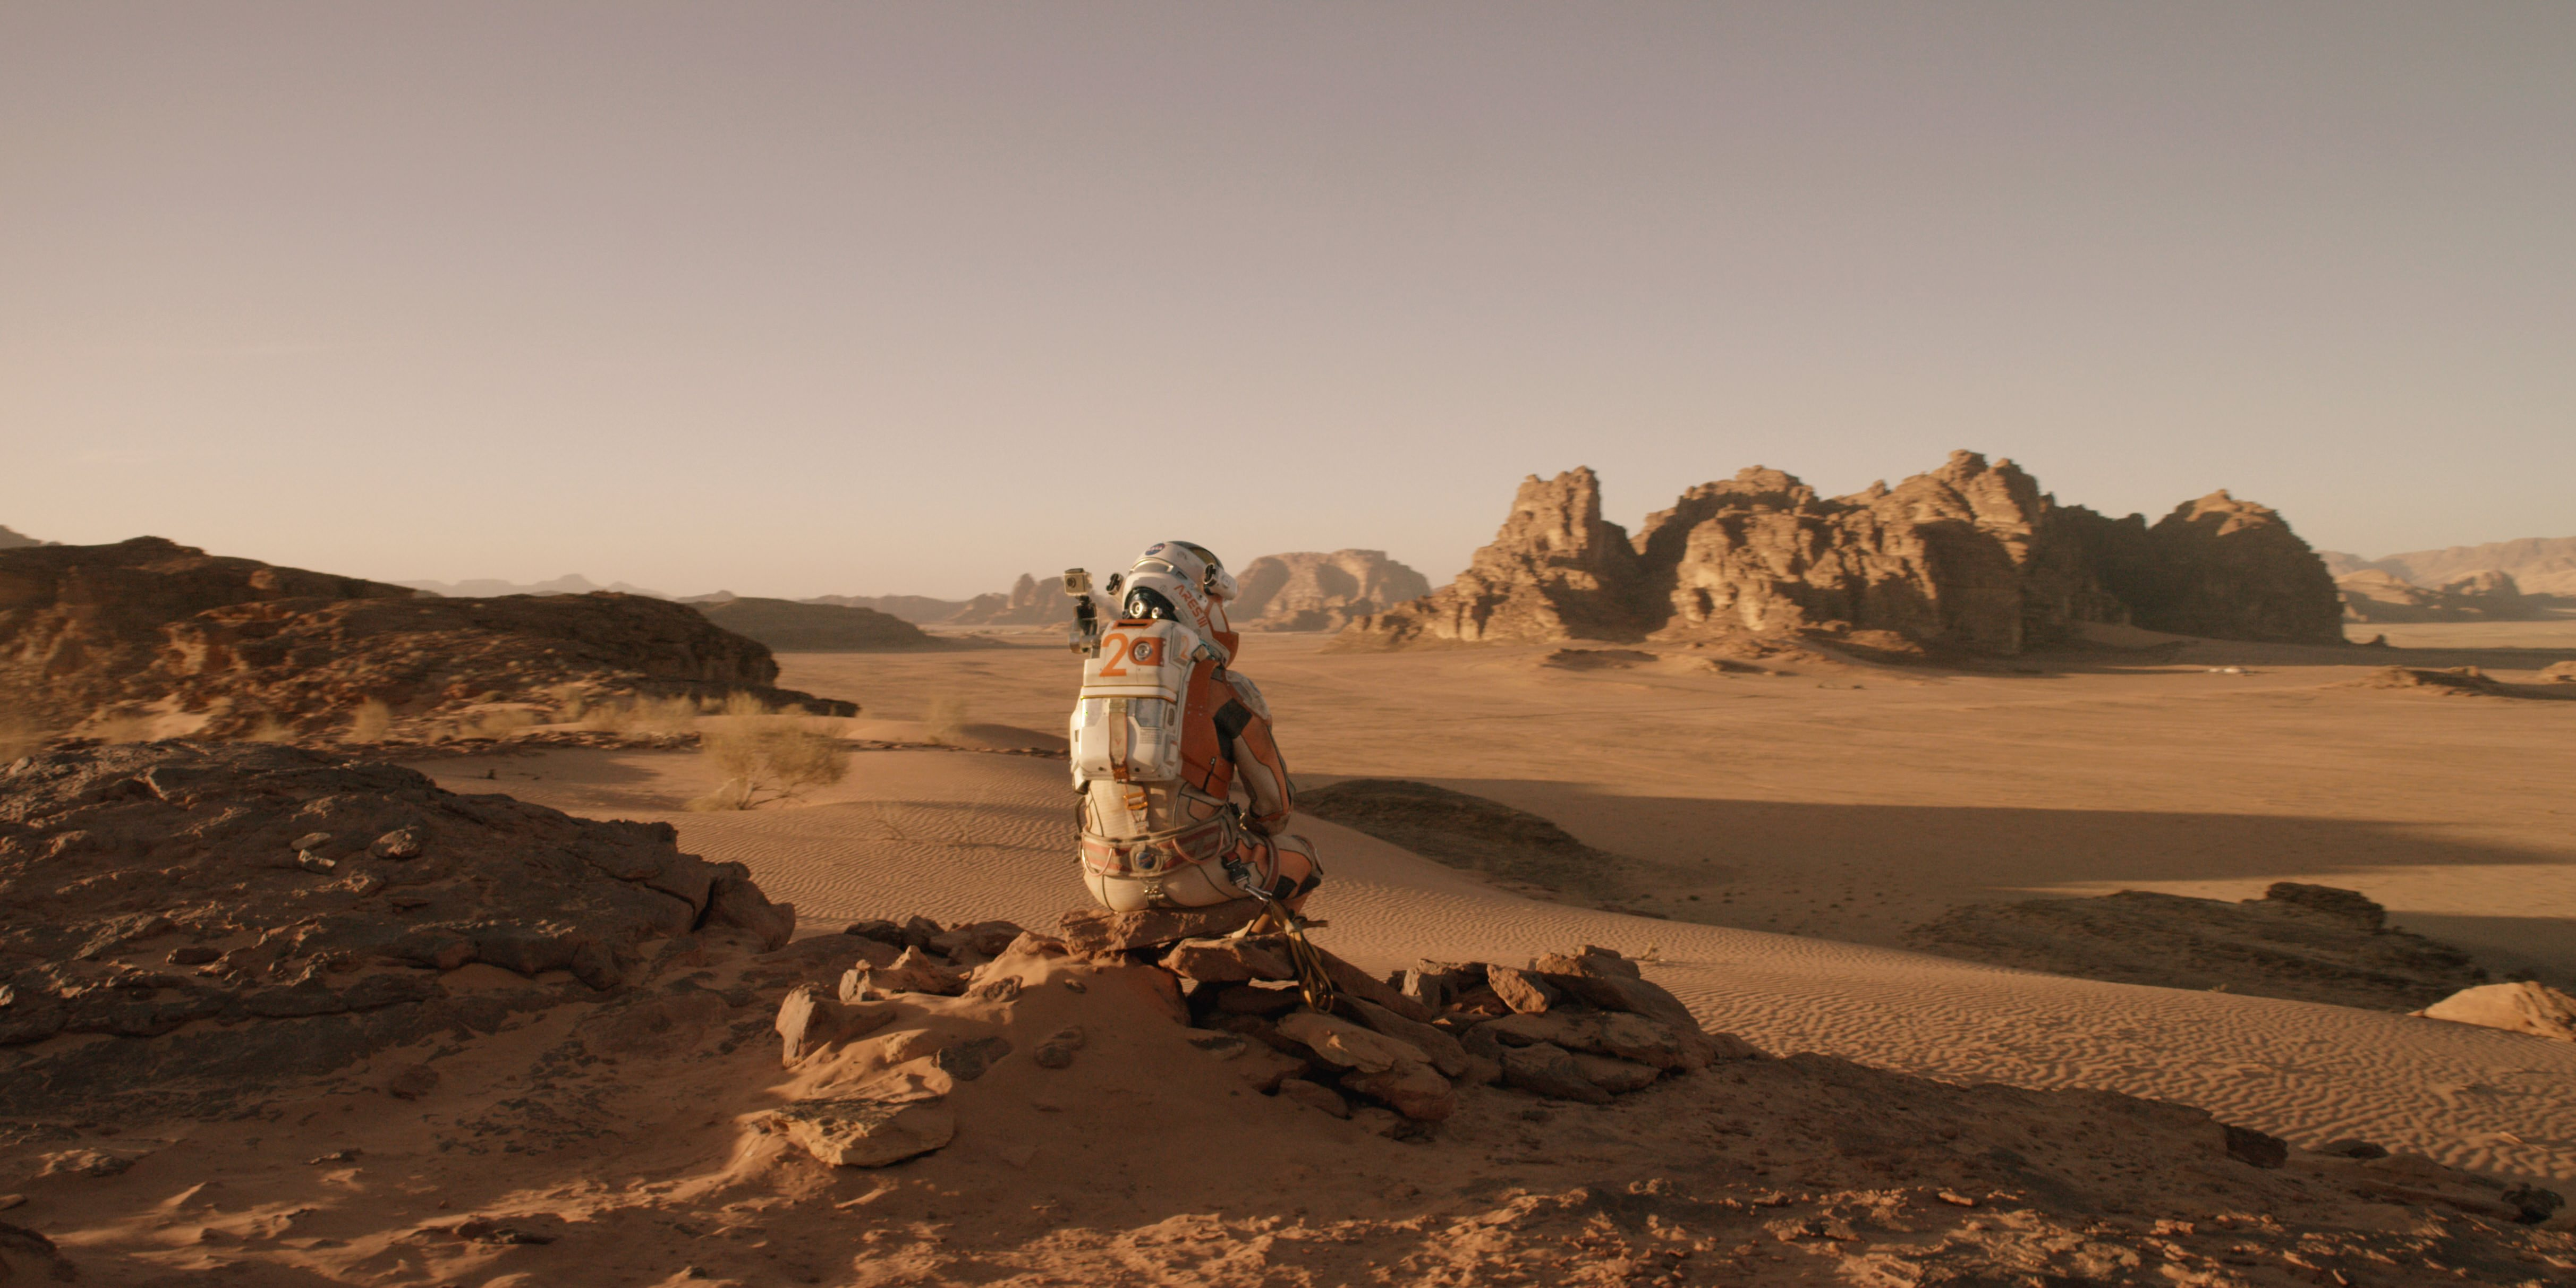 Scene from 'The Martian' starring Matt Damon as NASA astronaut Mark Watney contemplating magnificent panoramic visit while stranded on Mars.  Credits: 20th Century Fox